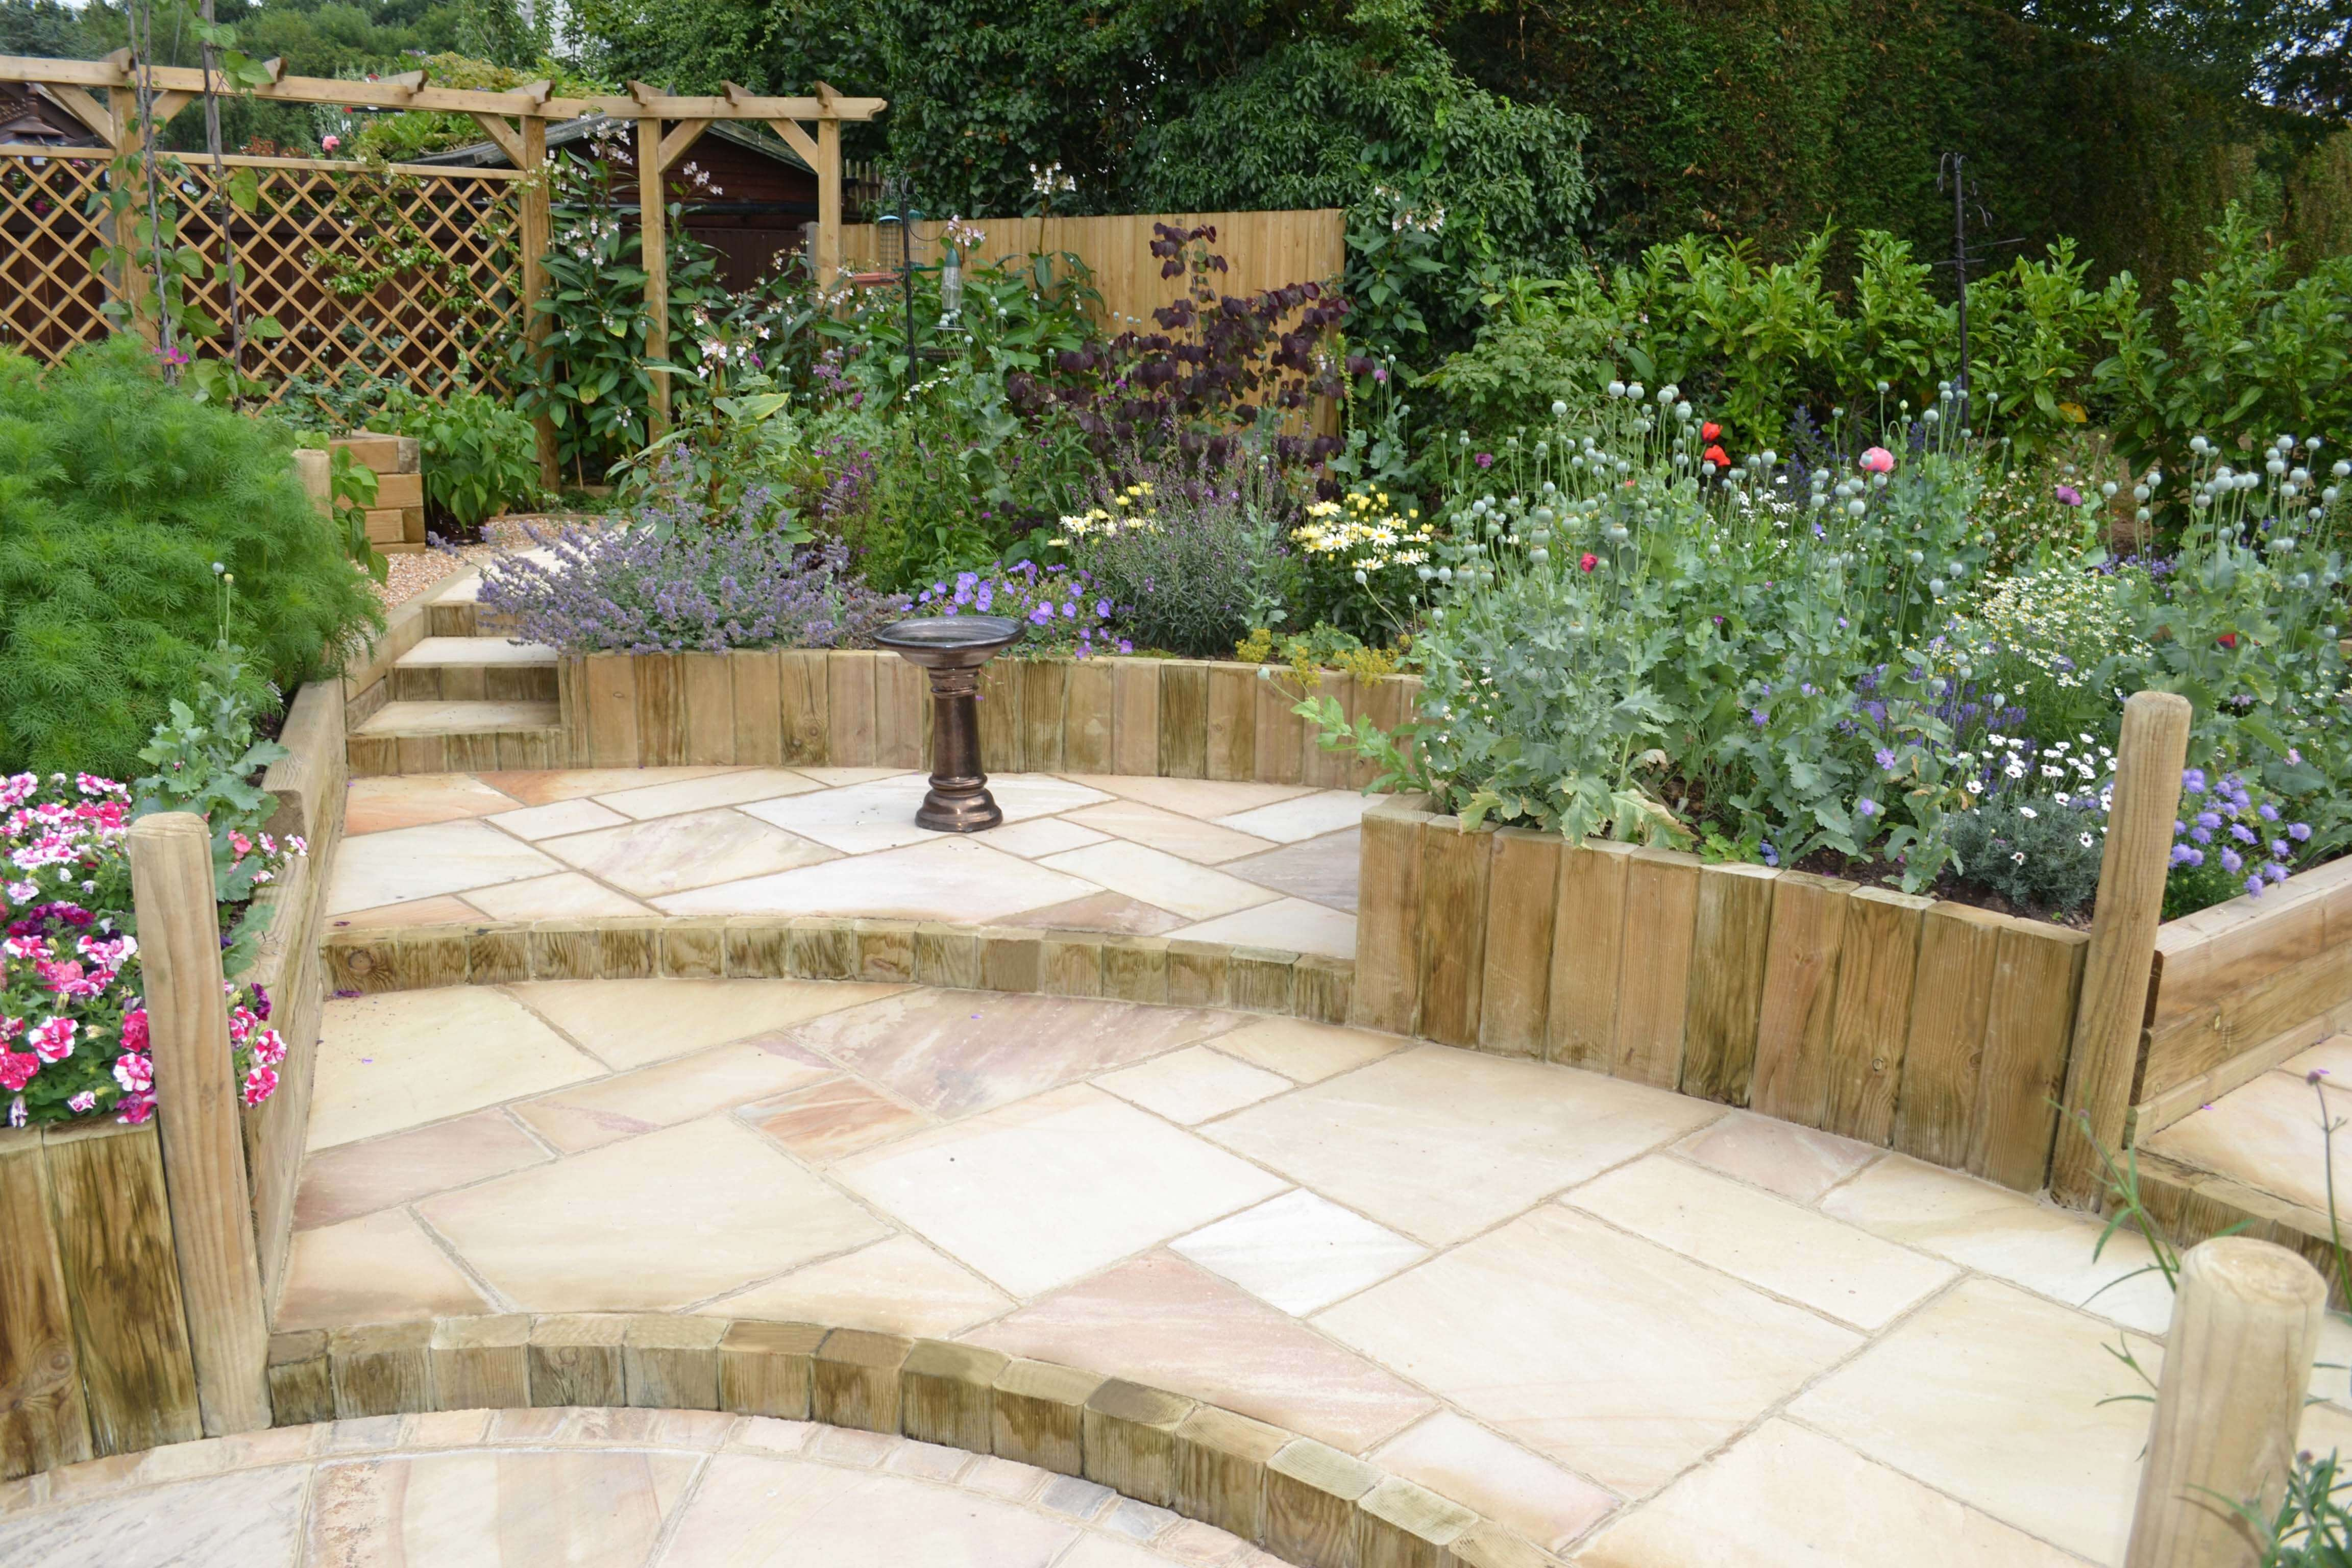 garden with steps from landscape timbers and single wooden pergola